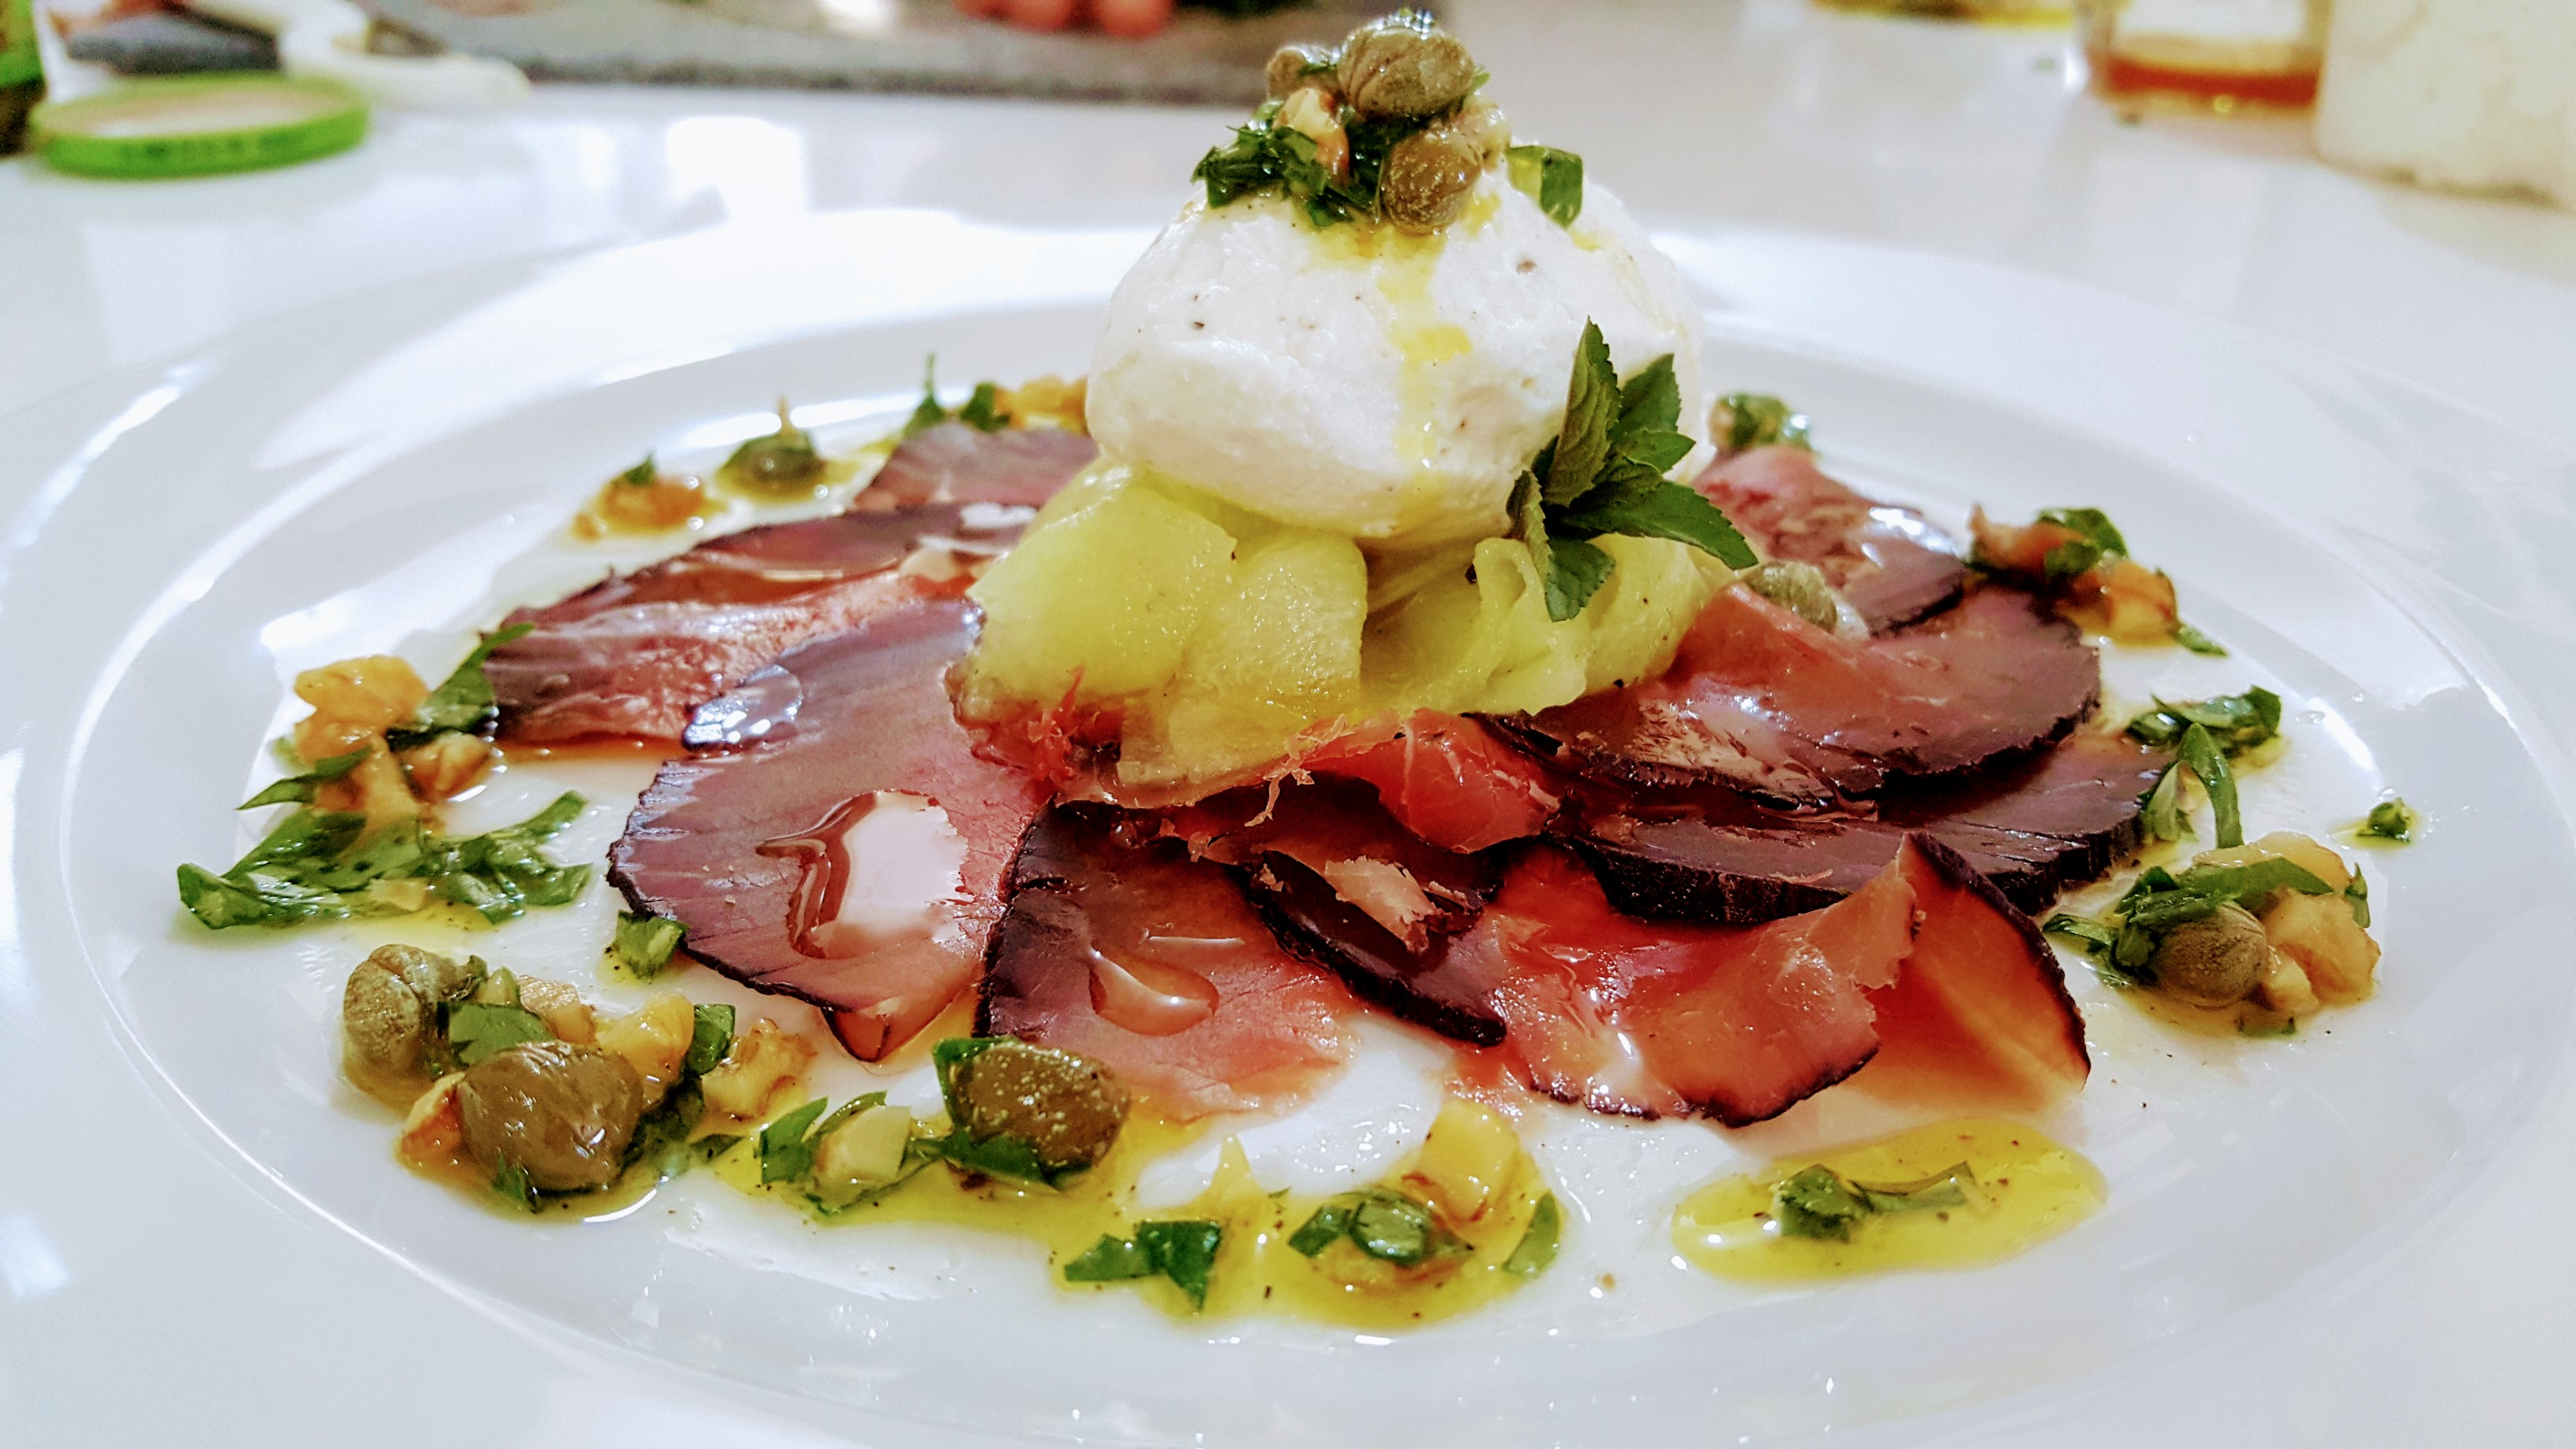 Carpaccio of Home-made Bresaola